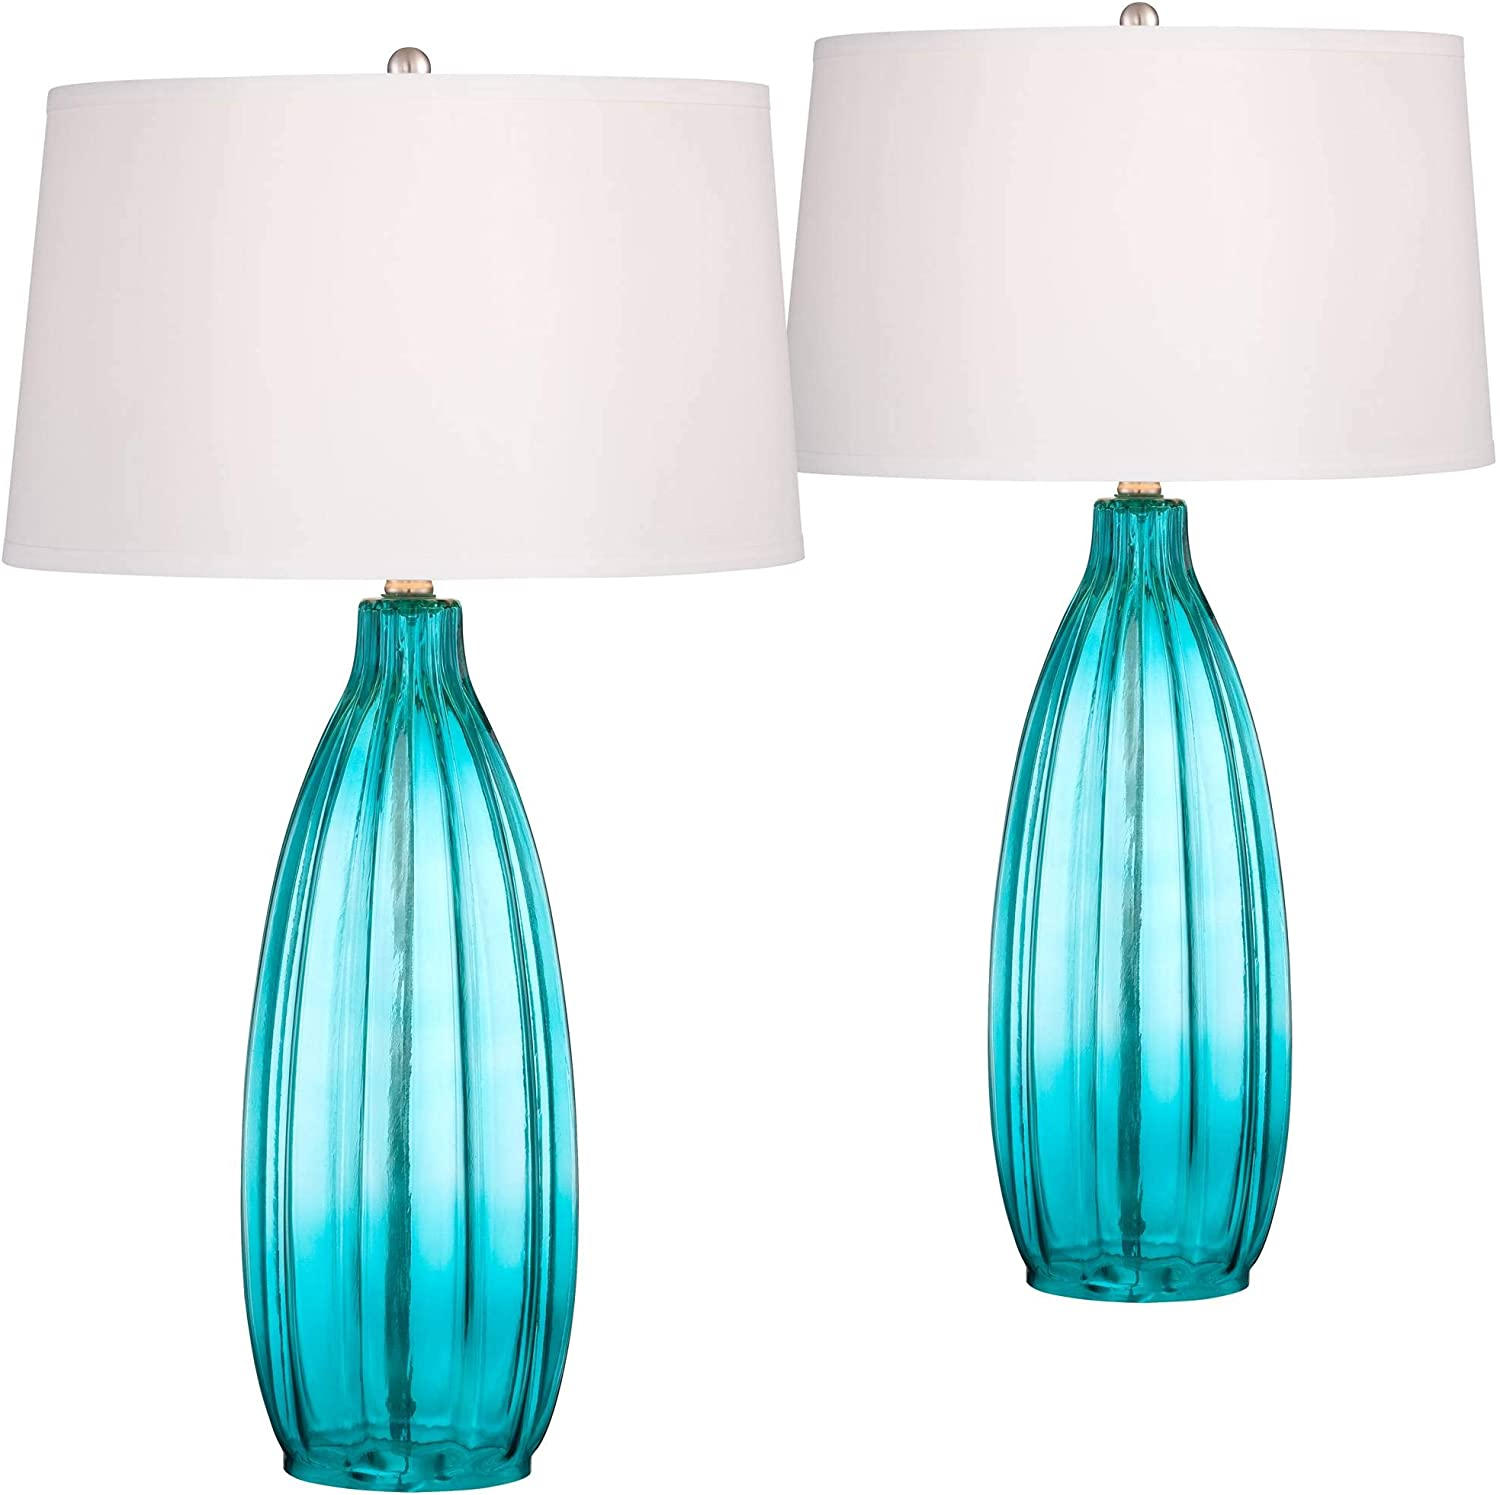 Stella Coastal Table Lamps